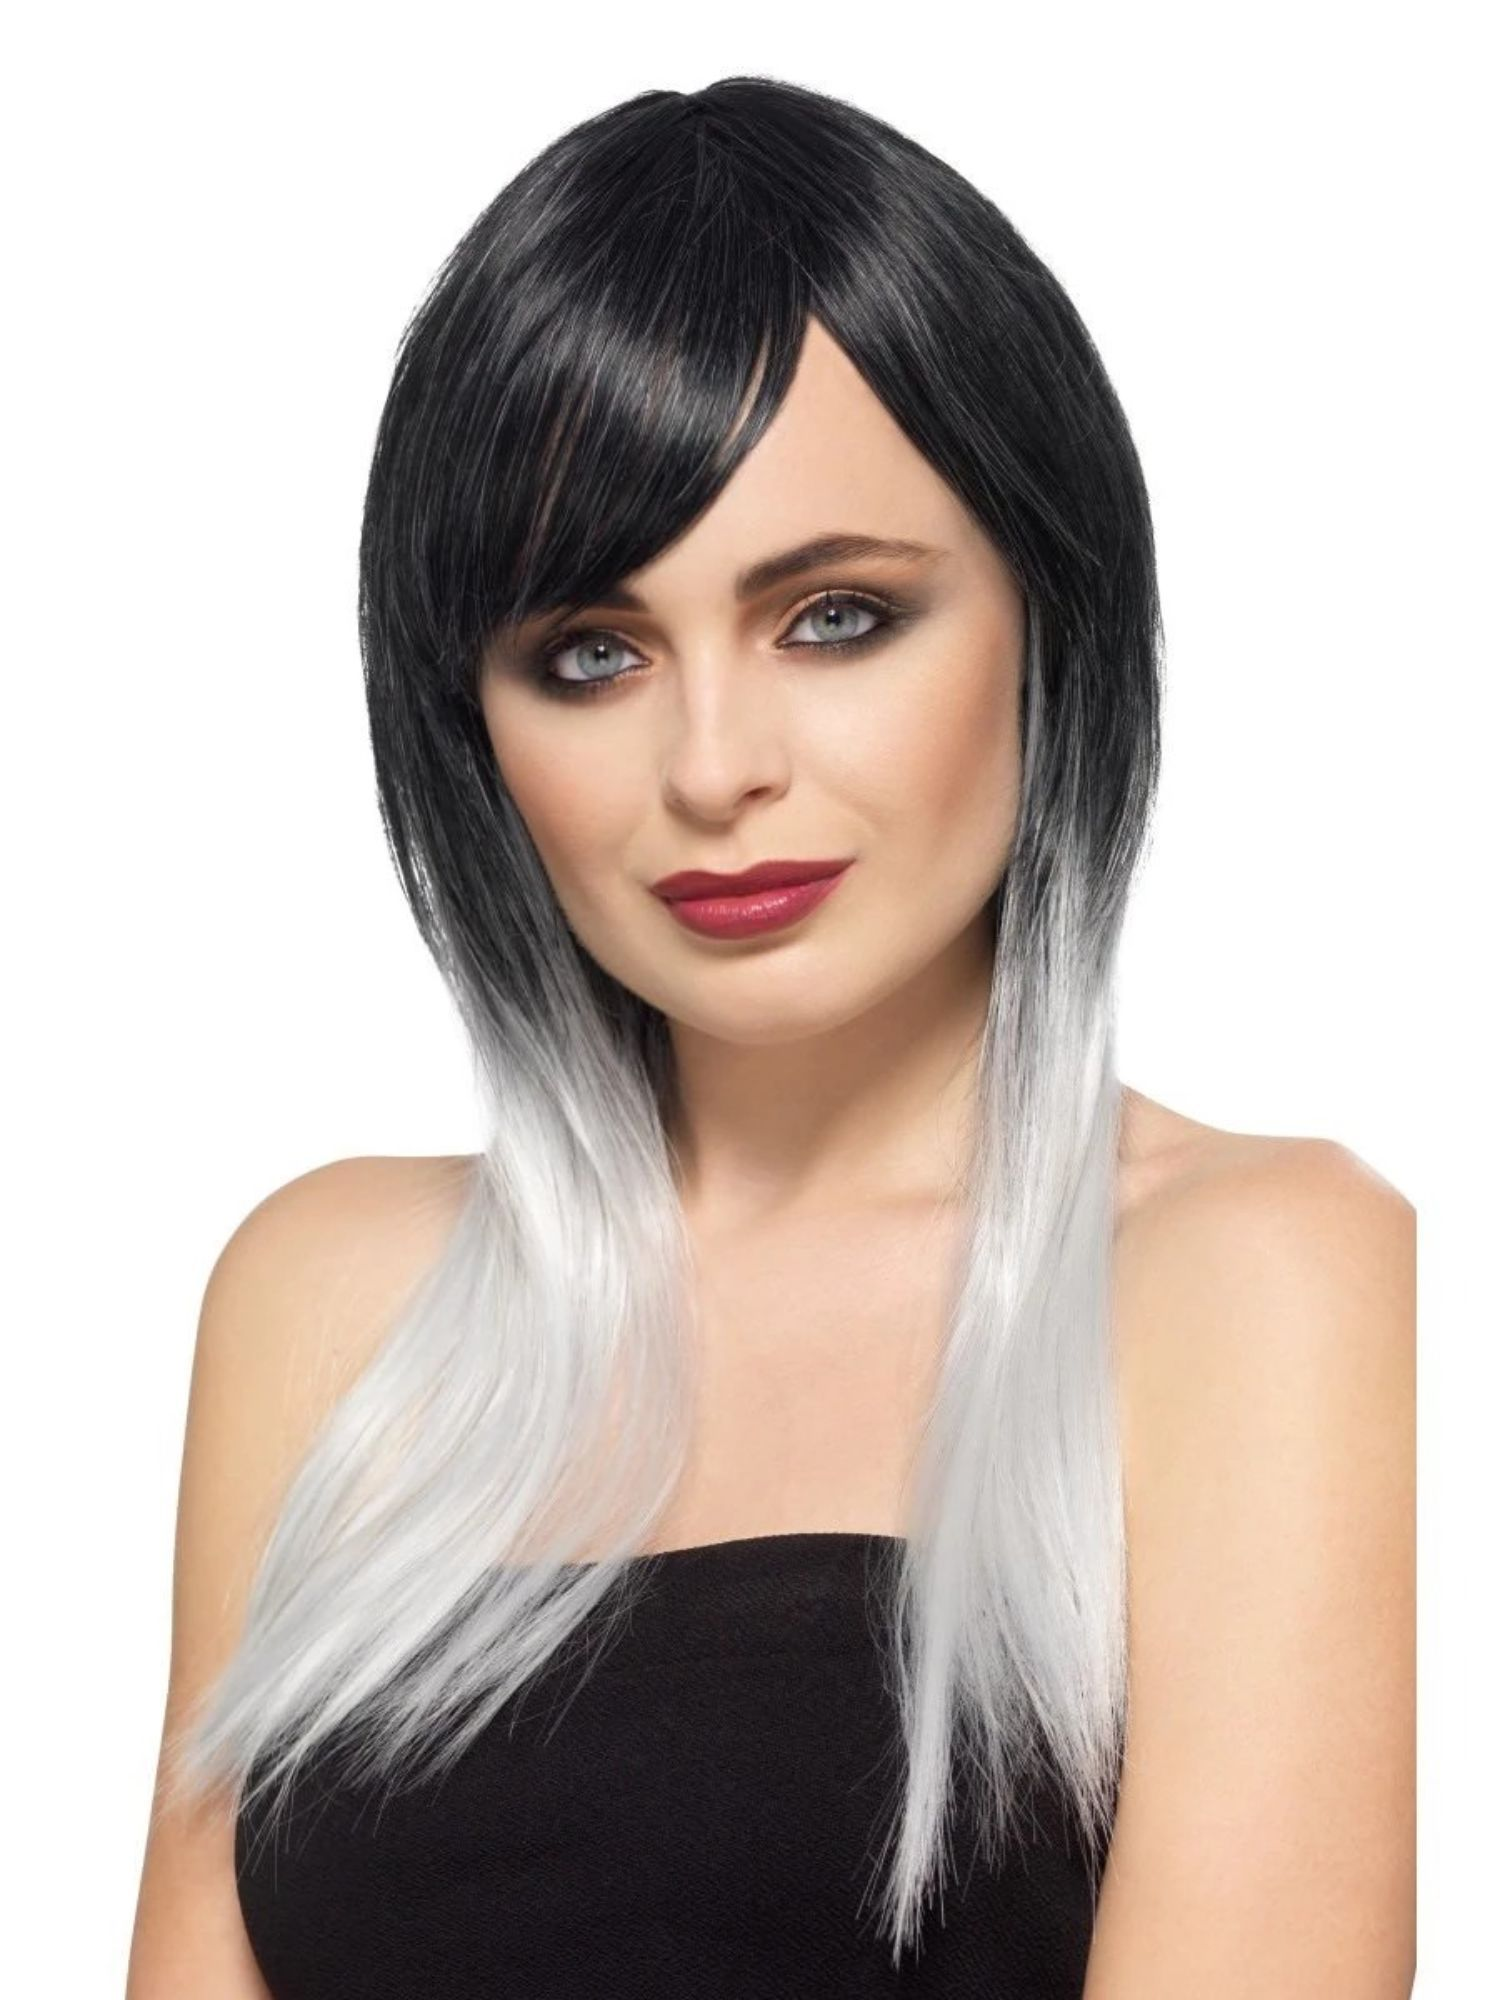 2021 New Lace Front Wigs Yellow Bob Lace Front Wigs White Long Wig With Bangs 360 Ombre Lace Wig